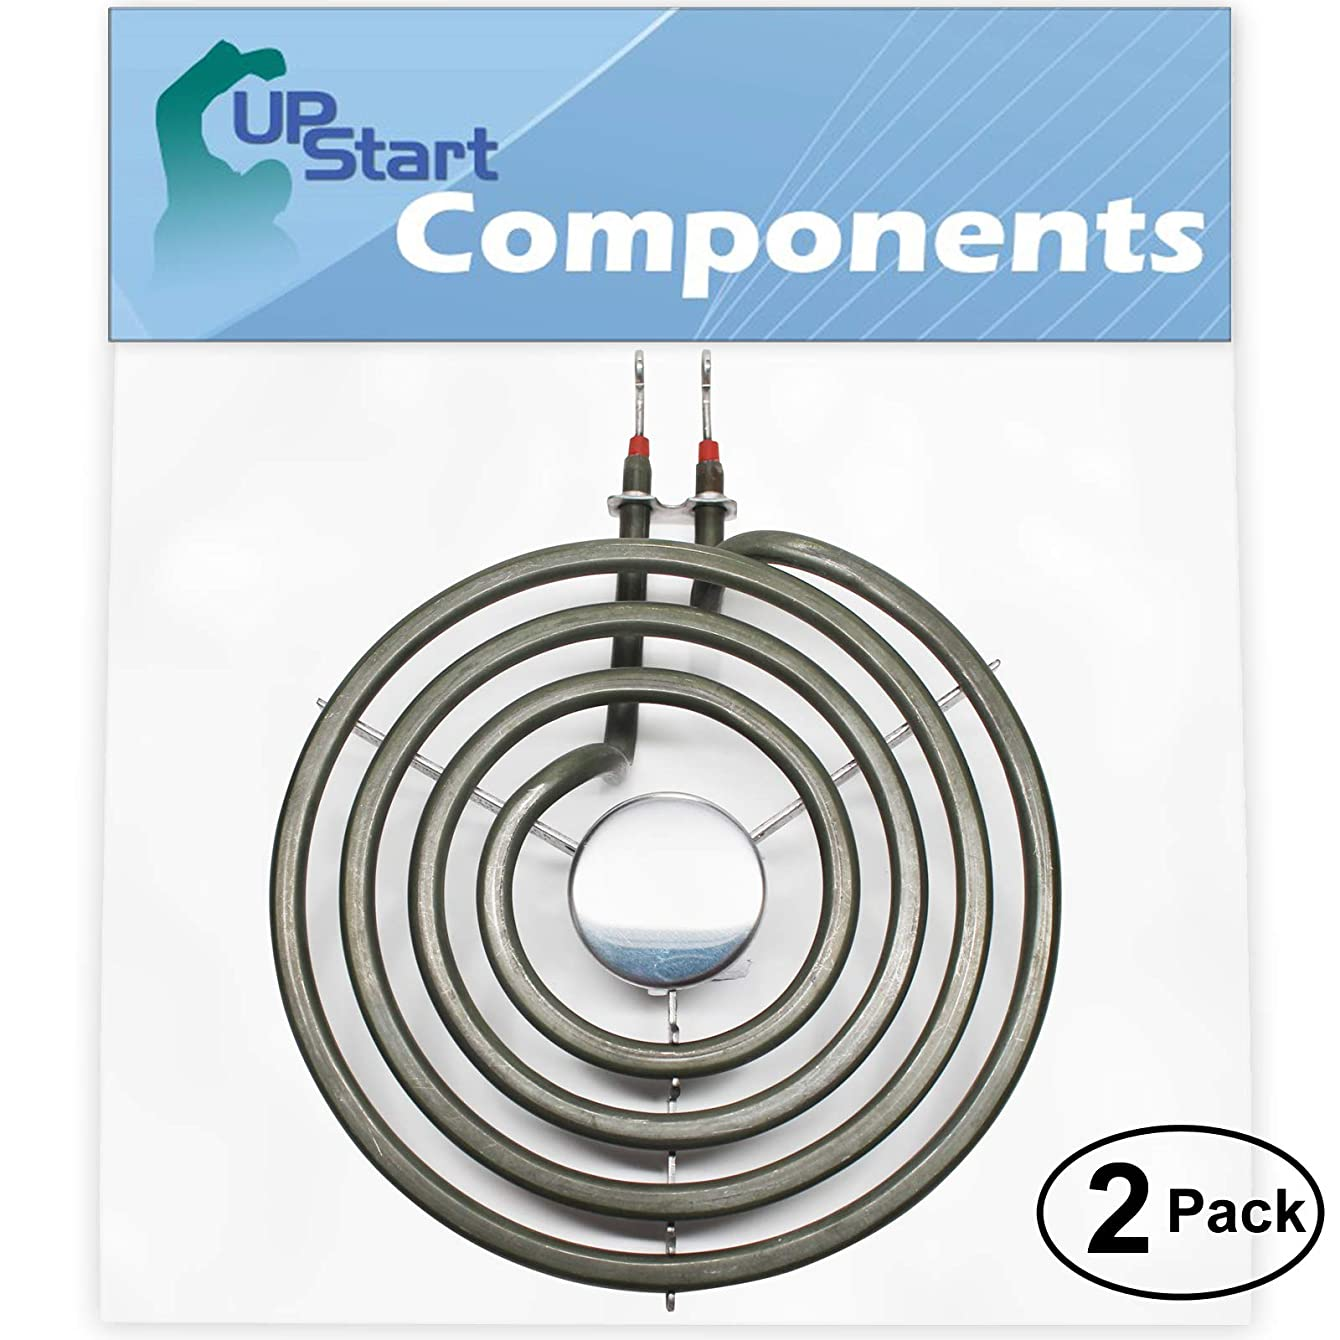 2-Pack Replacement Whirlpool RF360BXXW2 6 inch 4 Turns Surface Burner Element - Compatible Whirlpool 660532 Heating Element for Range, Stove & Cooktop